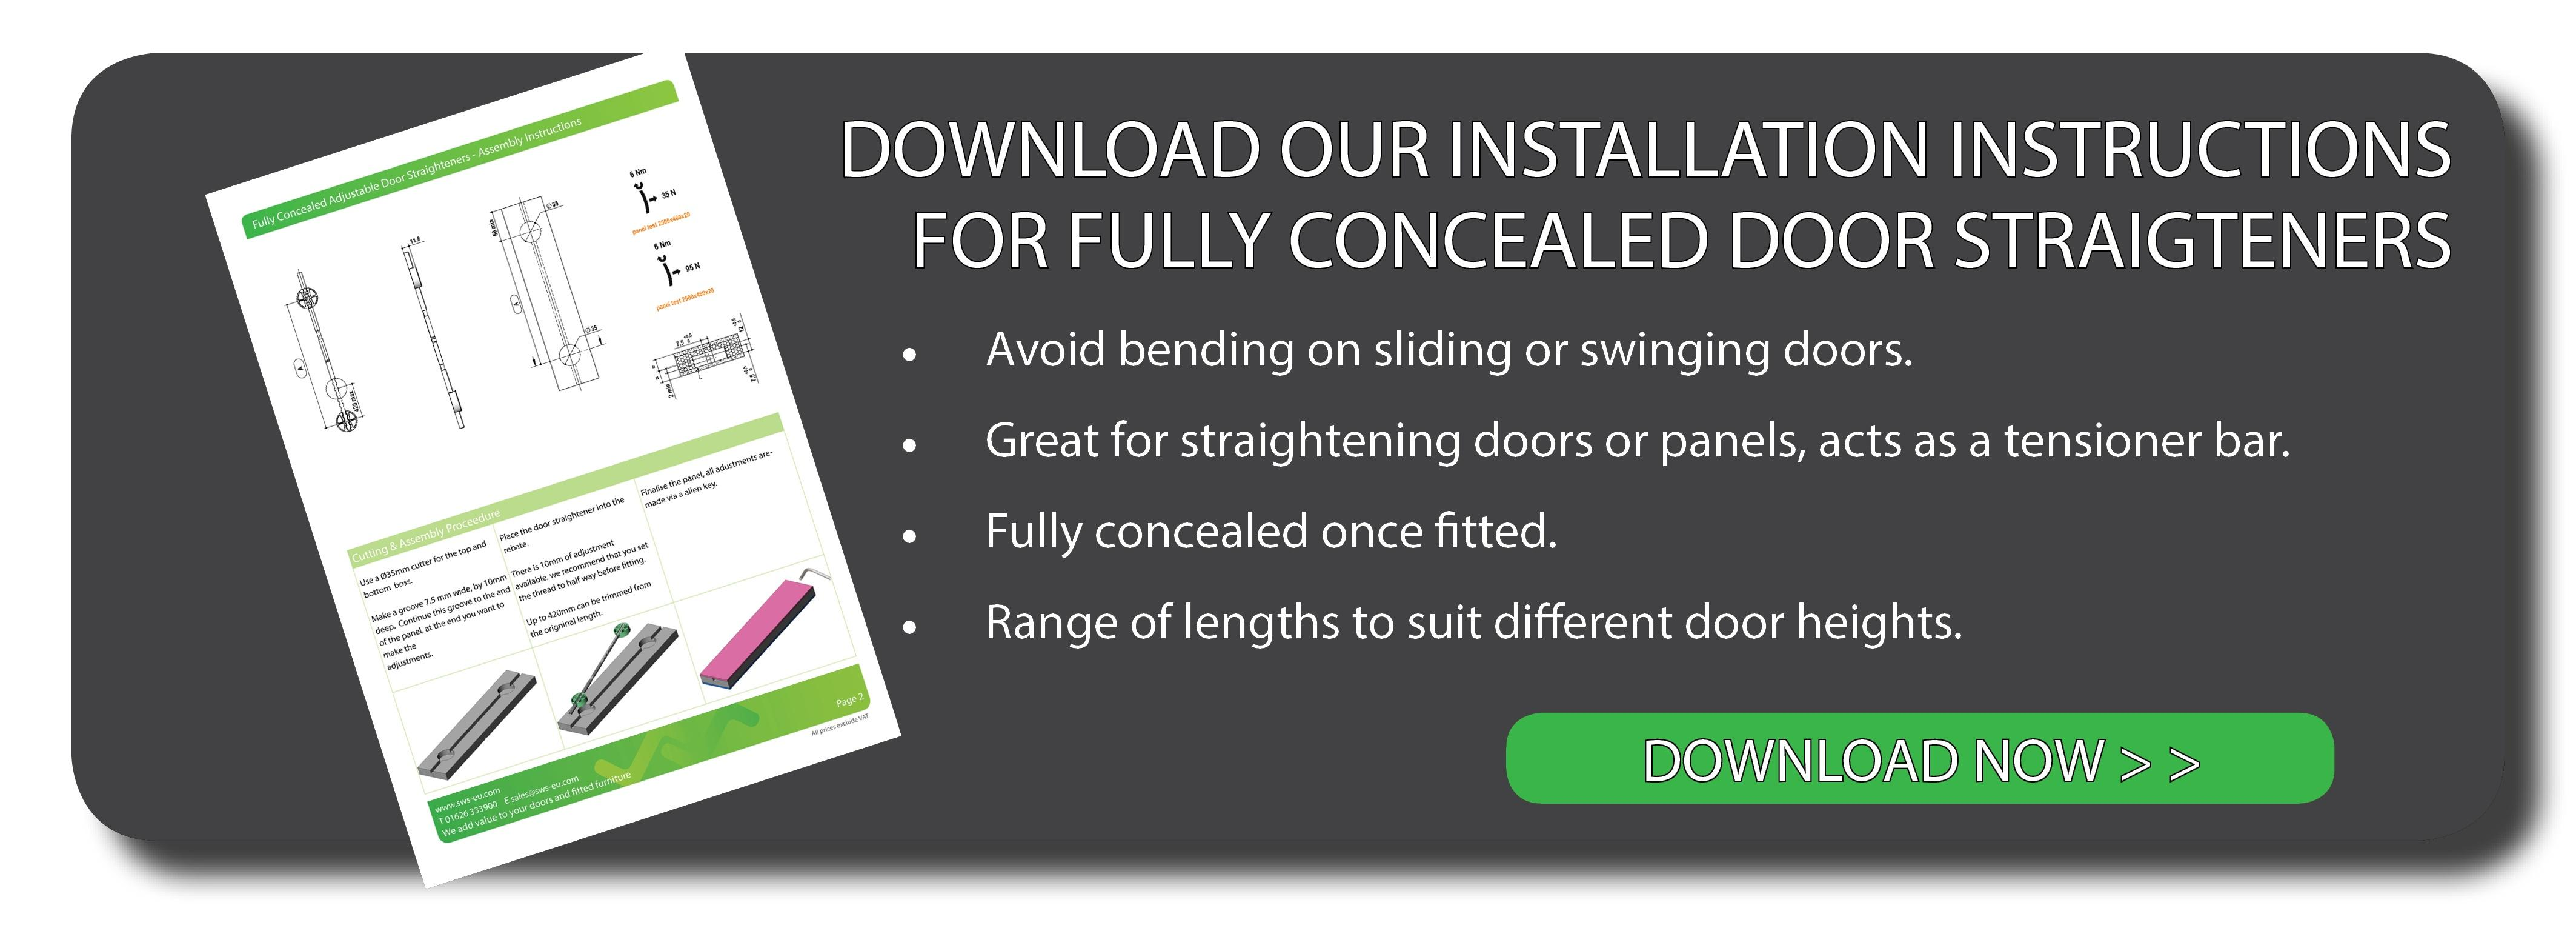 Download our Assembly Instructions For Fully Concealed Door Straighteners